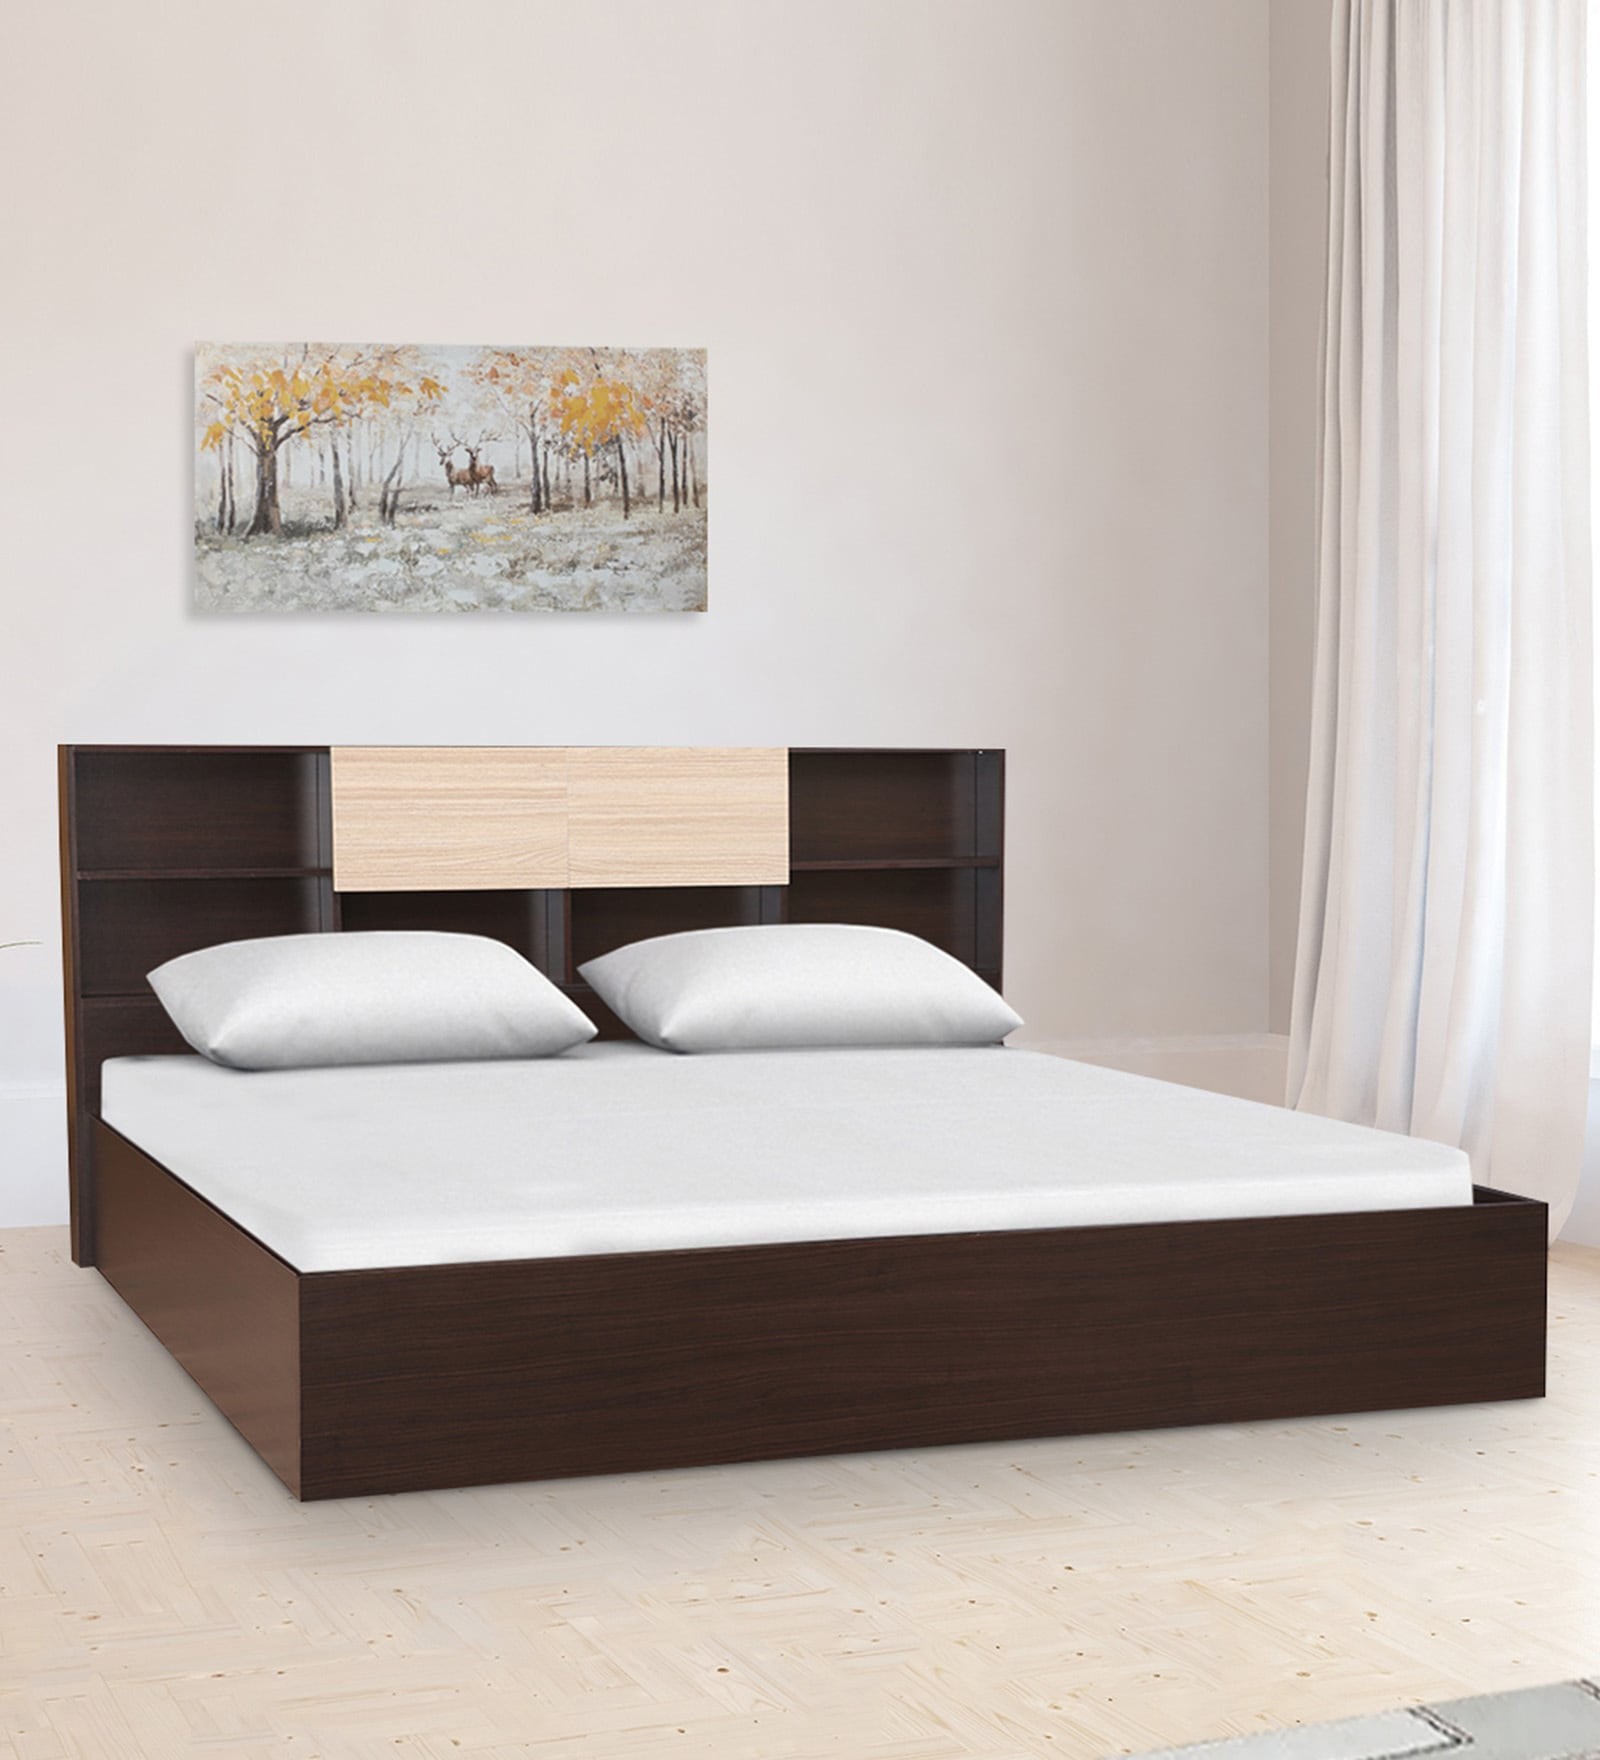 Alysson King Size Bed With Box Storage